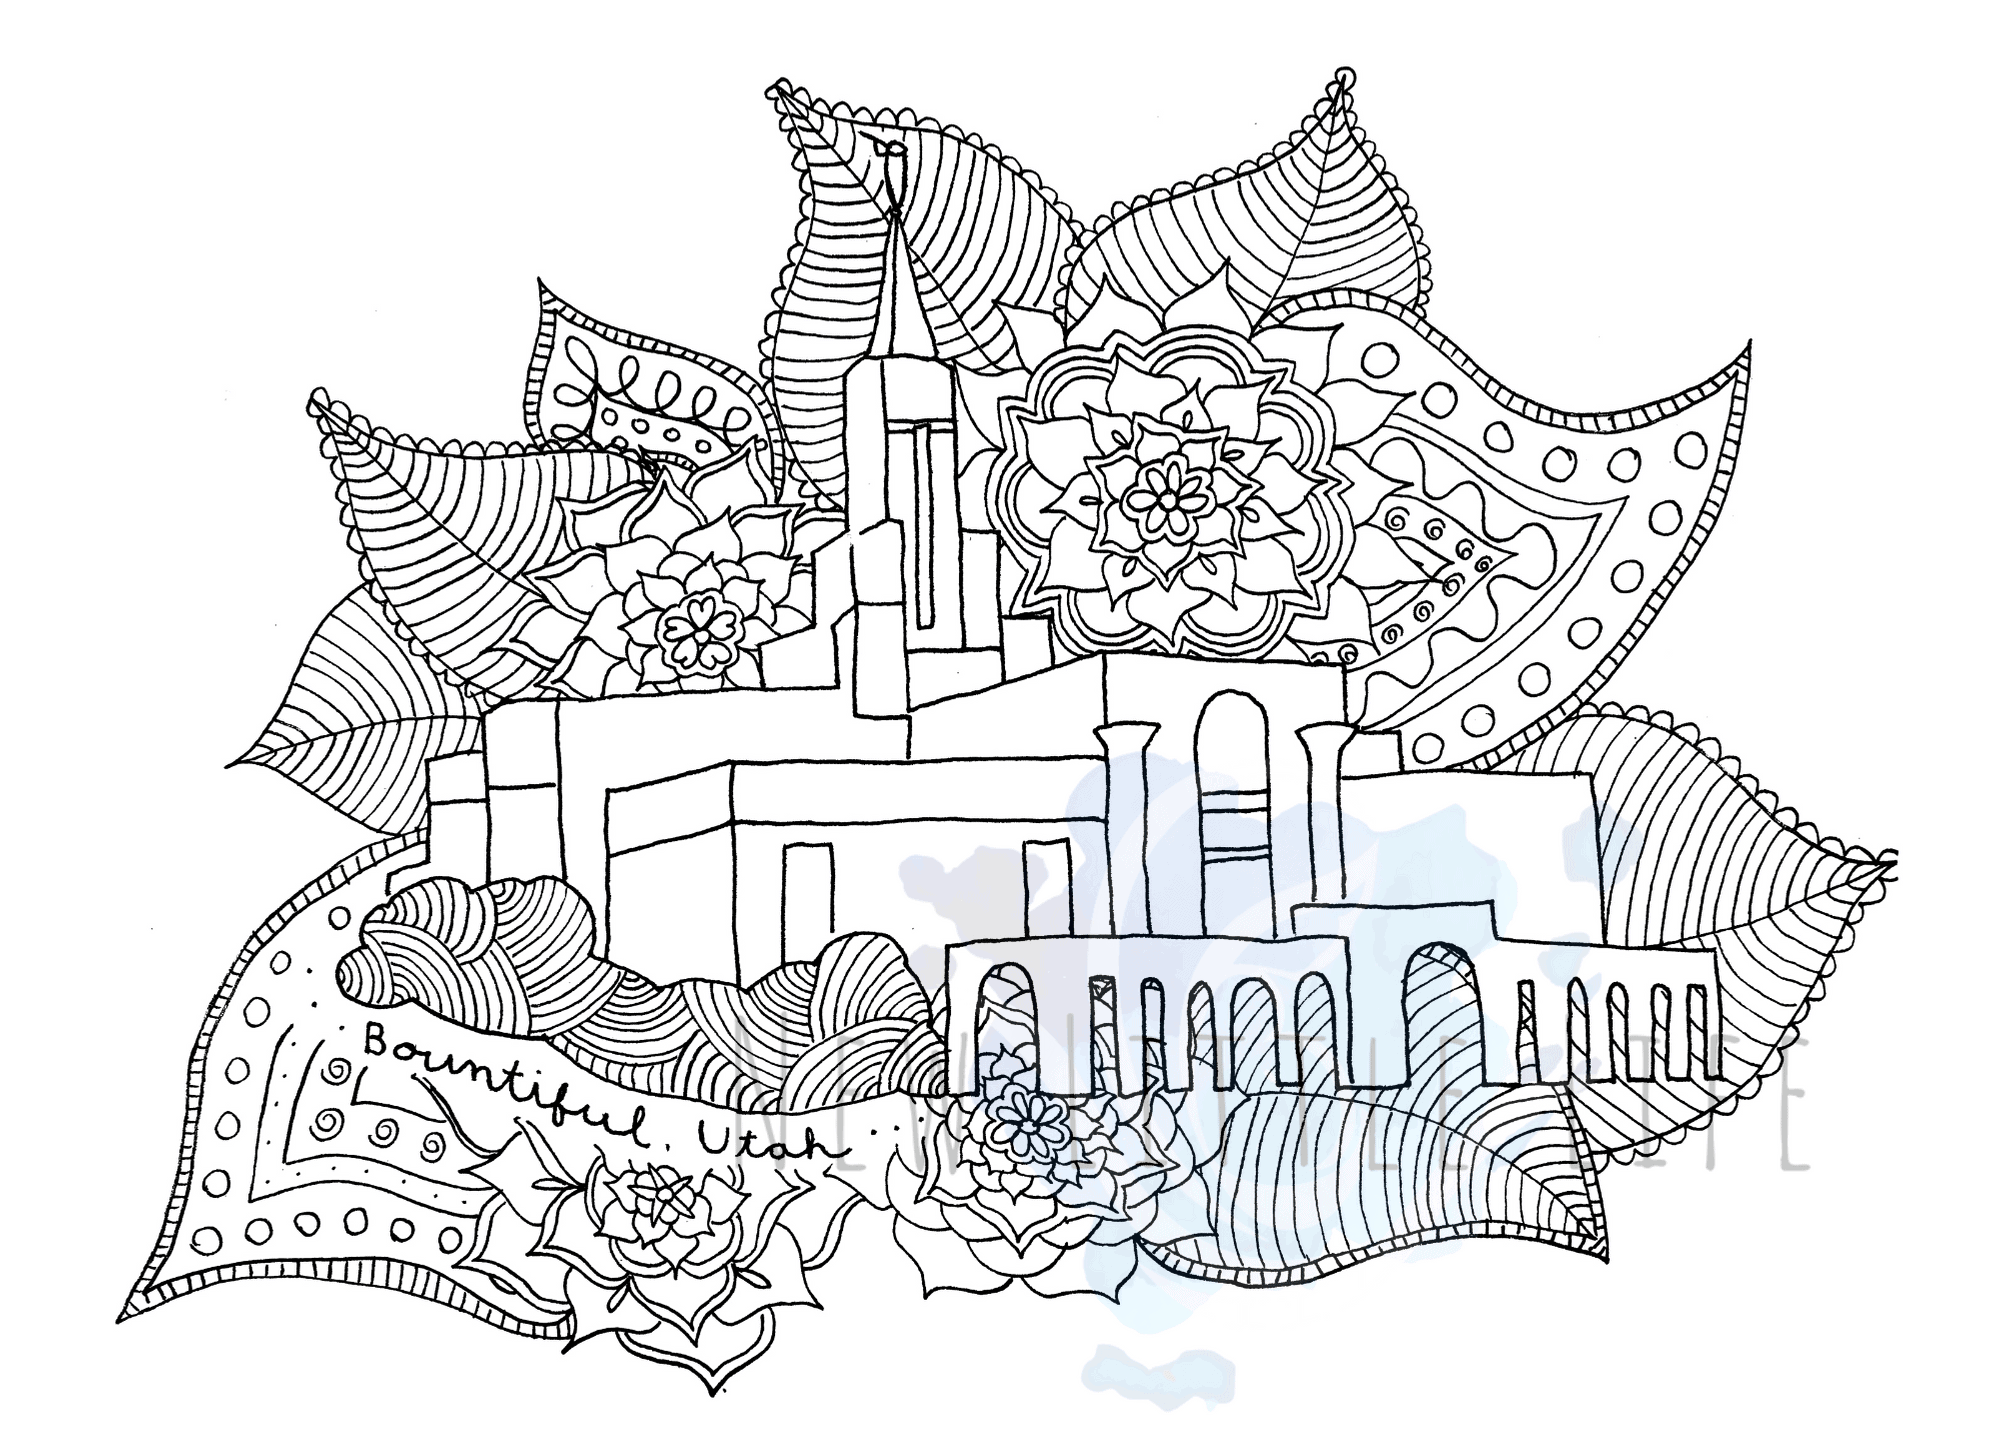 Bountiful, Utah LDS Temple - Coloring Page - New Little Life